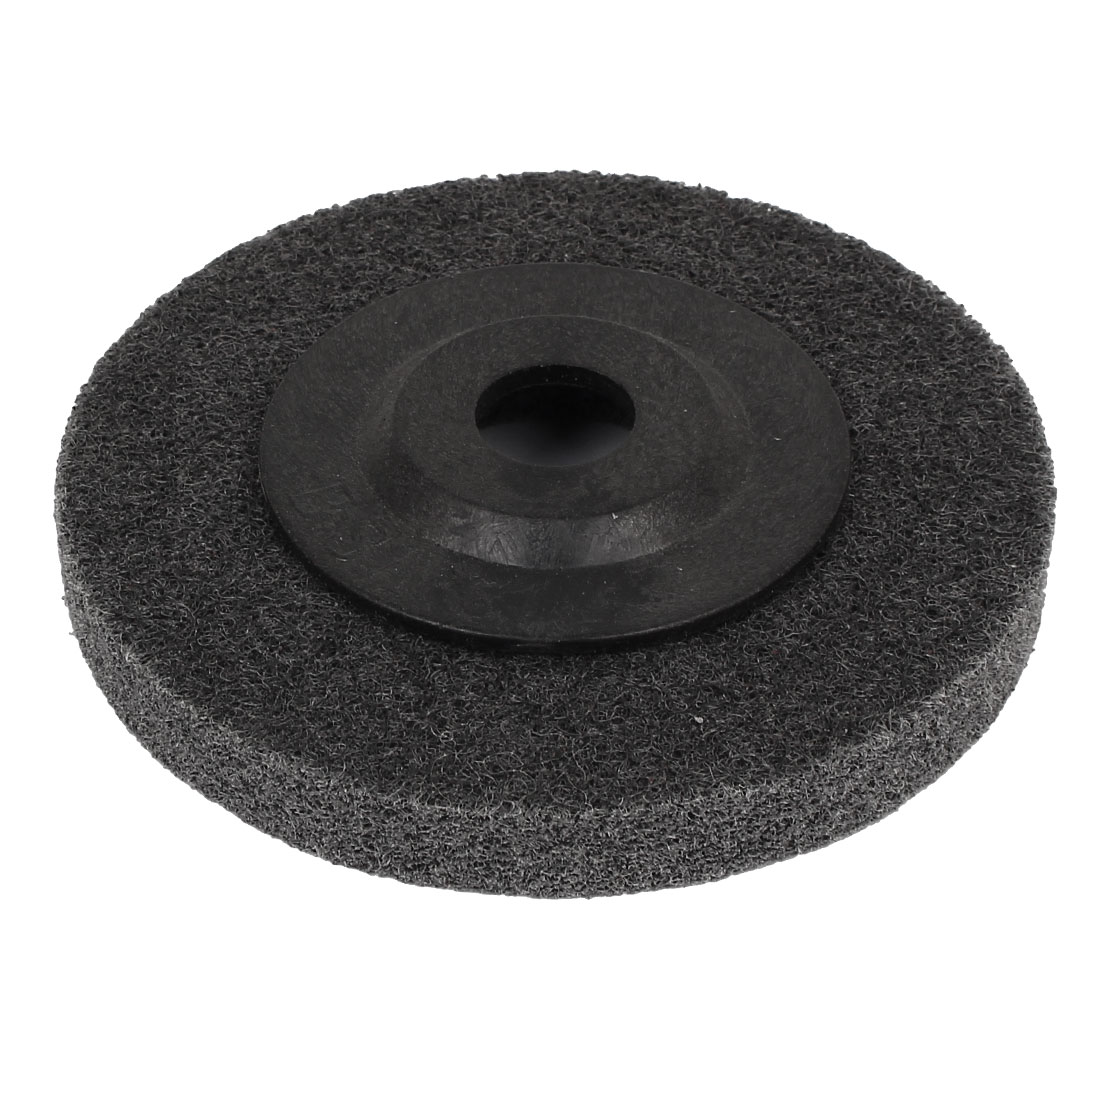 "4"" Outer Dia Plastic Lid Nylon Polishing Grinding Wheel"